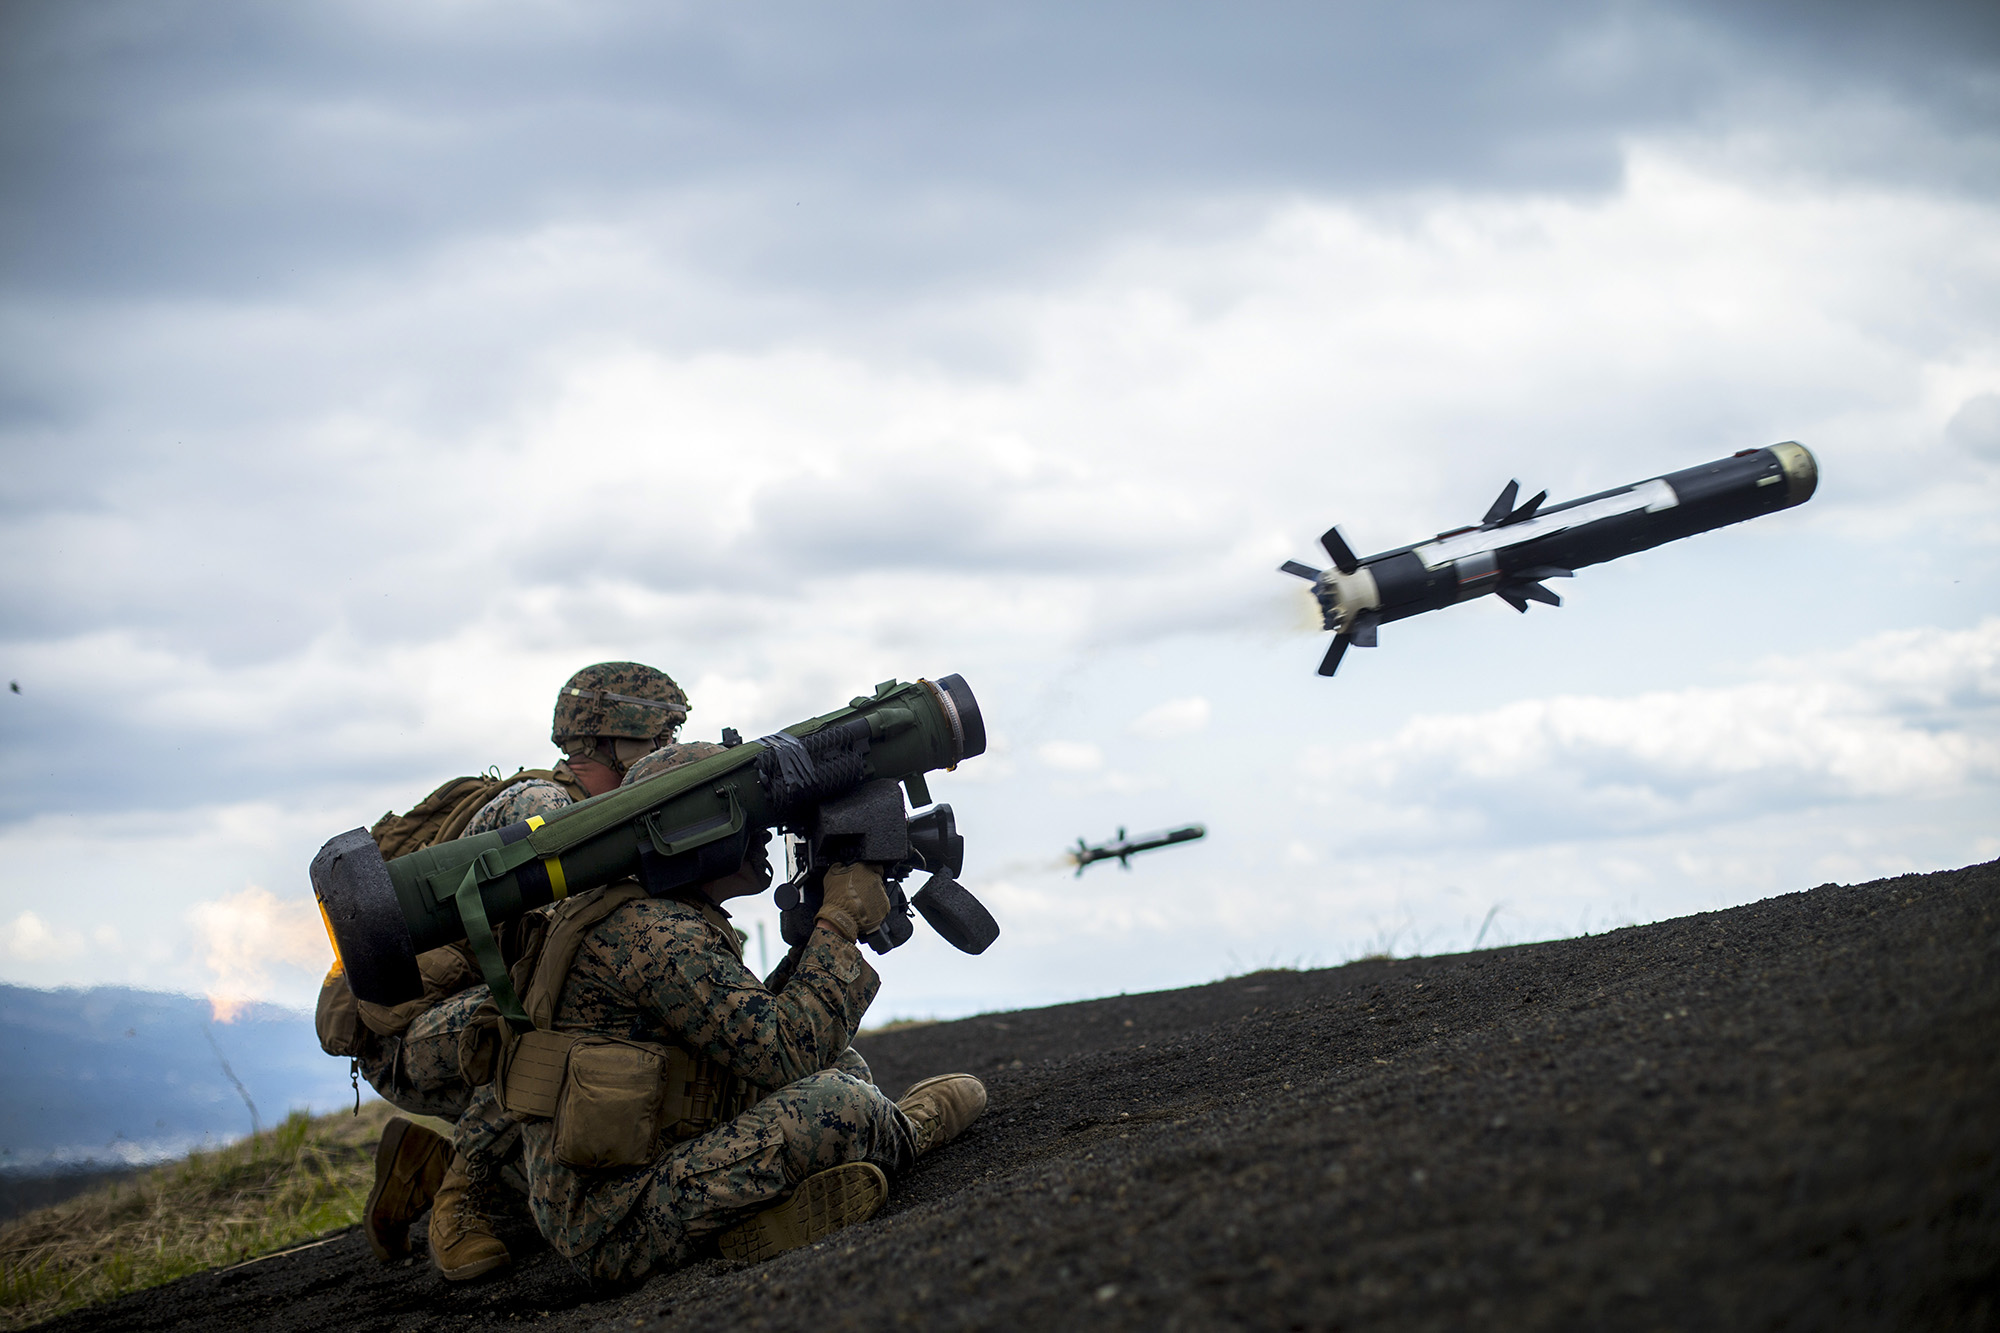 U.S. Marine Corps Lance Cpl. Justin Cooper and Cpl. Jacob Siemsen fire a Javelin missile while conducting a live-fire combat rehearsal during Fuji Viper 21.3 at Combined Arms Training Center, Camp Fuji, Japan, April 12, 2021. (Lance Cpl. Jonathan Willcox/Marine Corps)